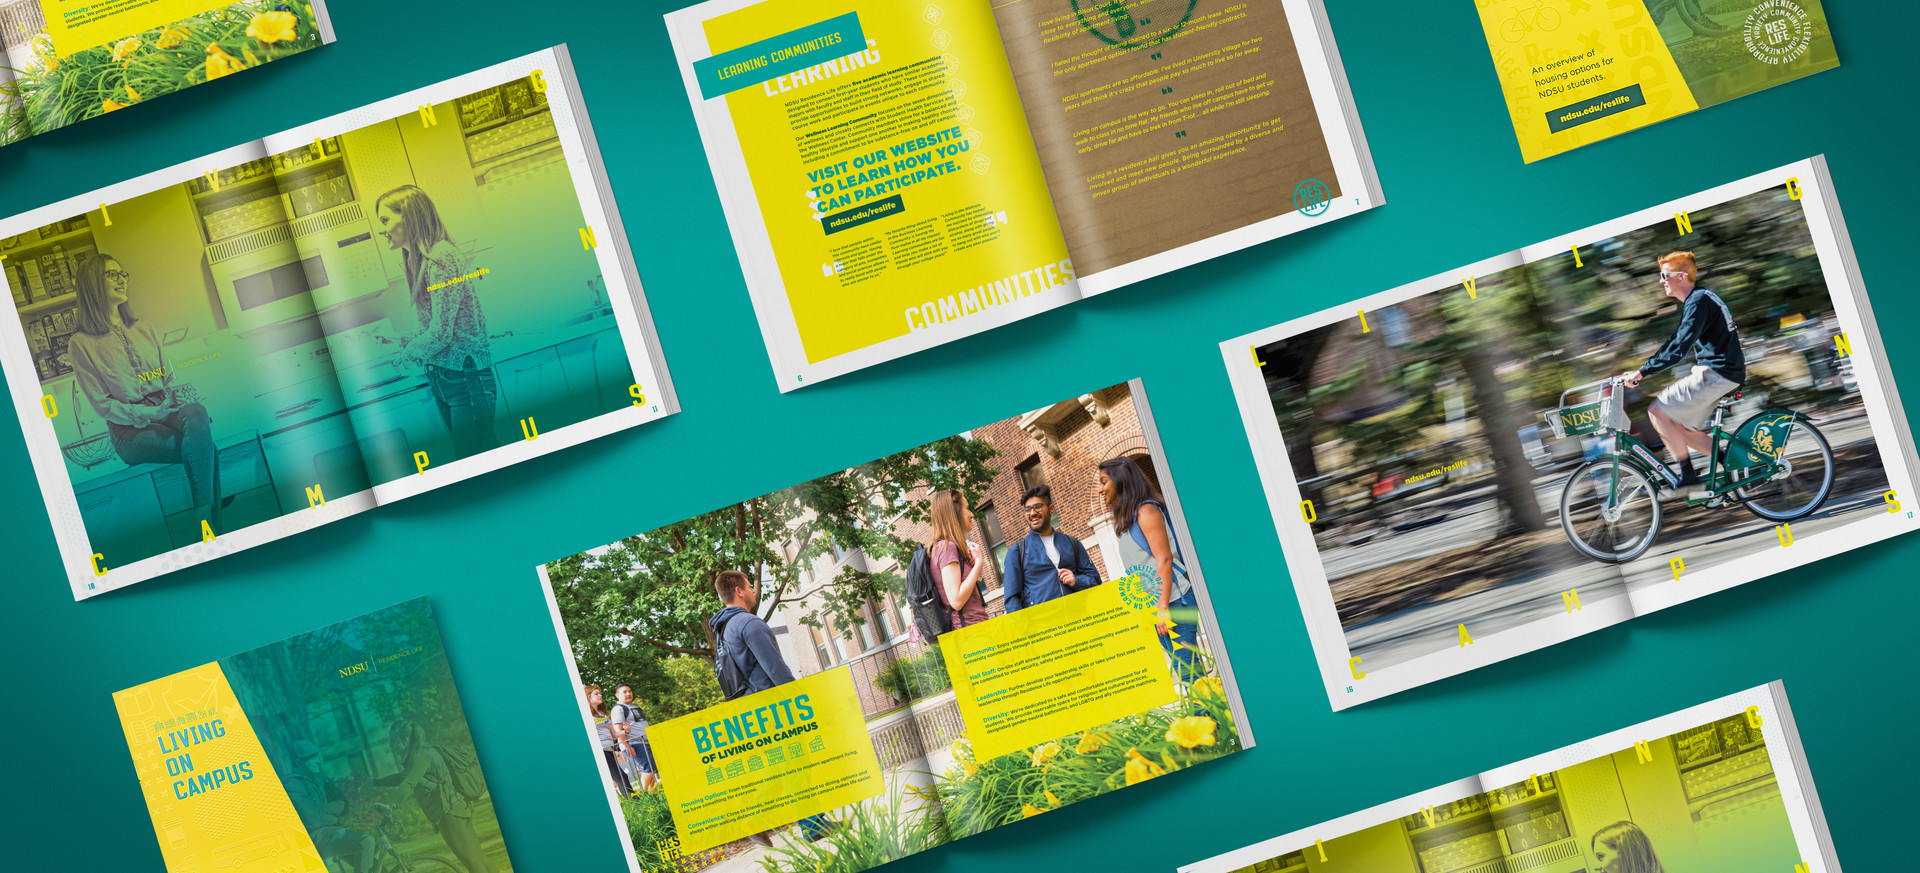 Living on Campus Brochure